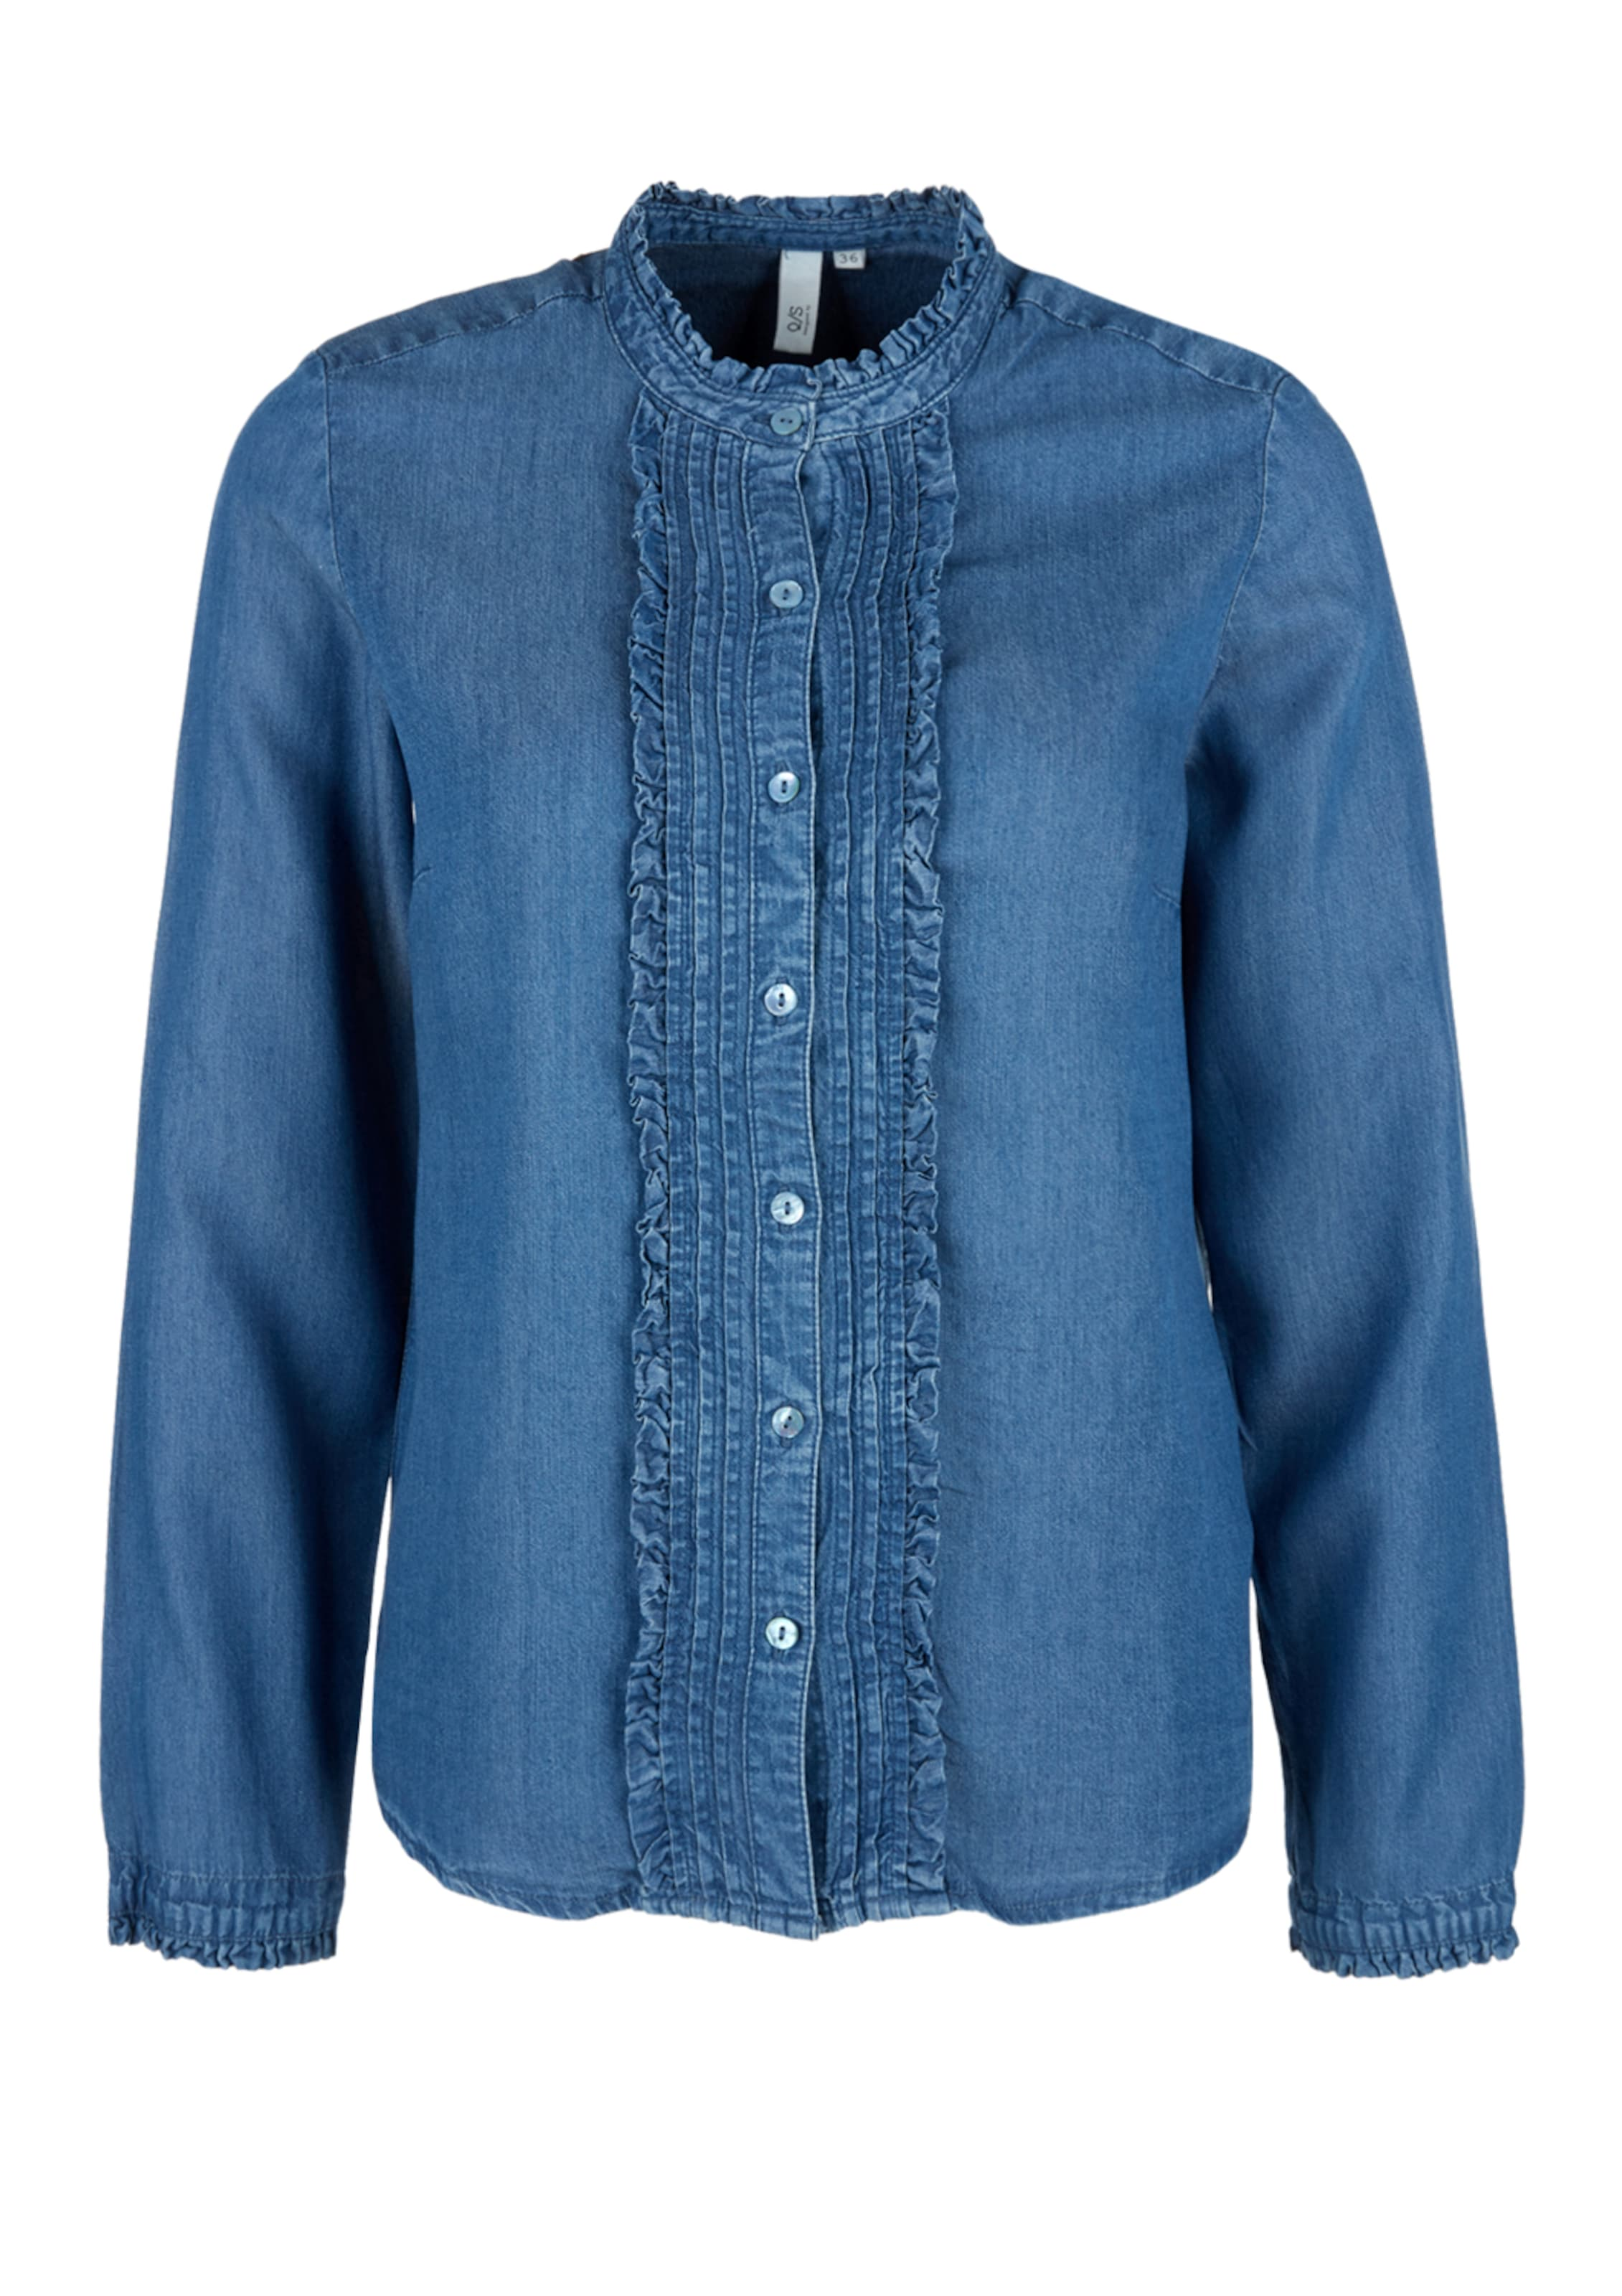 By Designed s In Q Bluse Denim Blue OPXn80kw